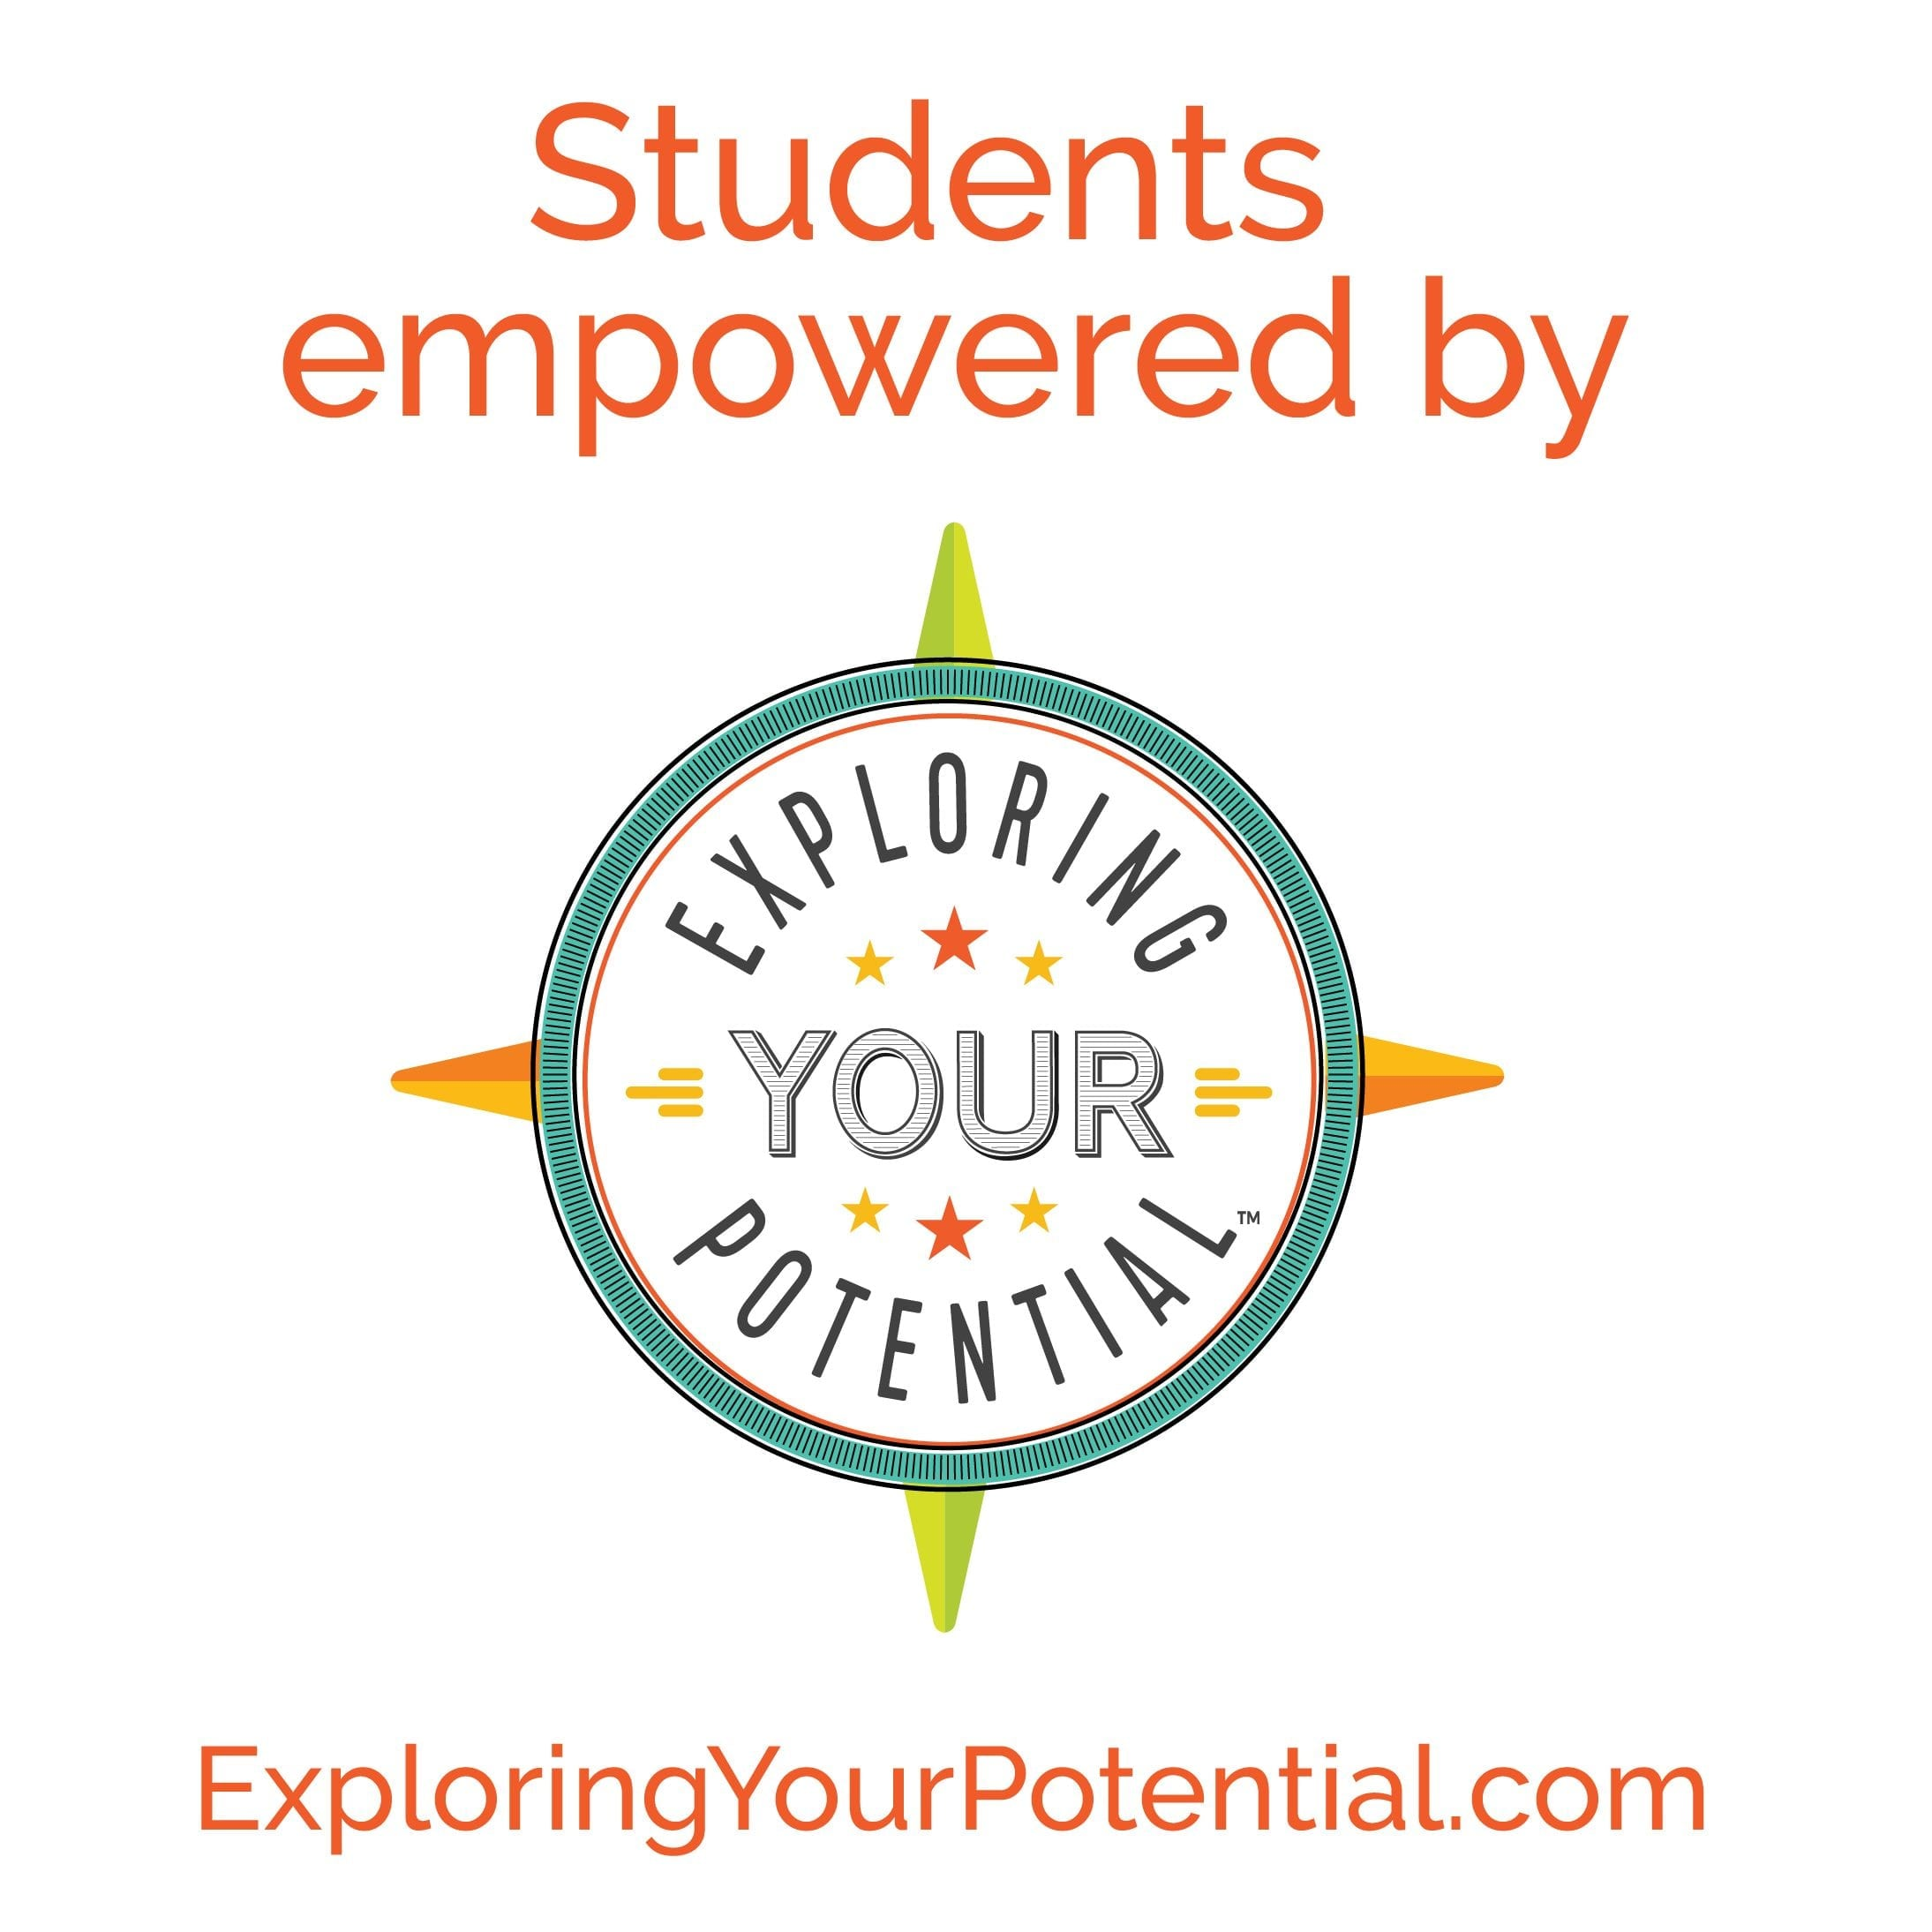 Students Empowered by Exploring Your Potential™